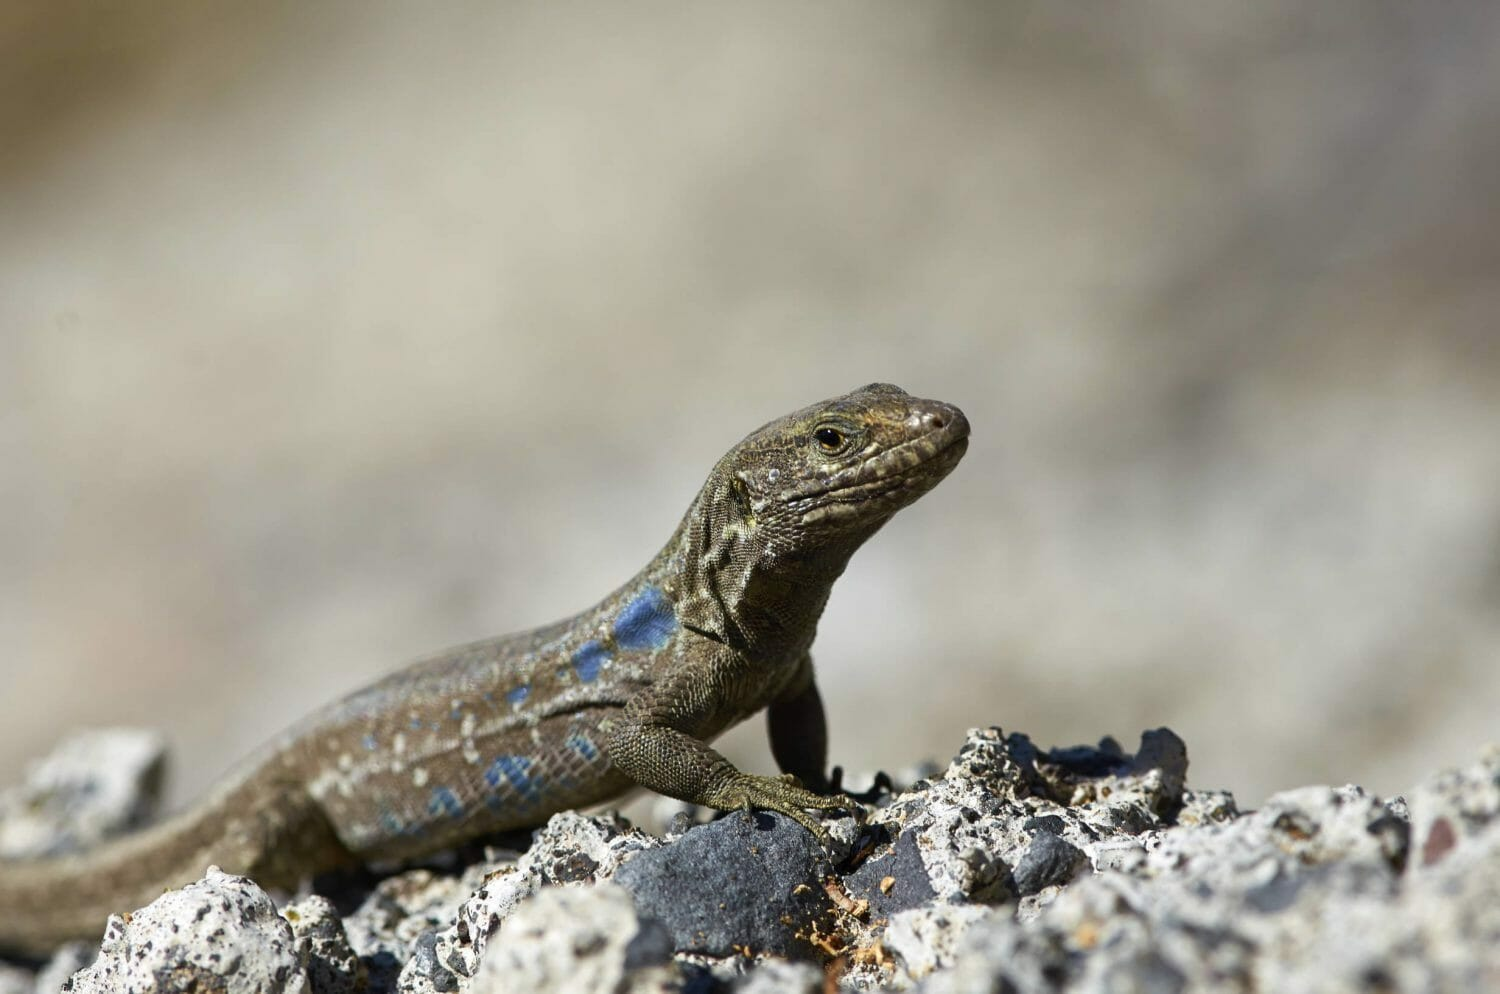 Wildlife photograph of a Southern Tenerife Lizard by Alisonfay.com